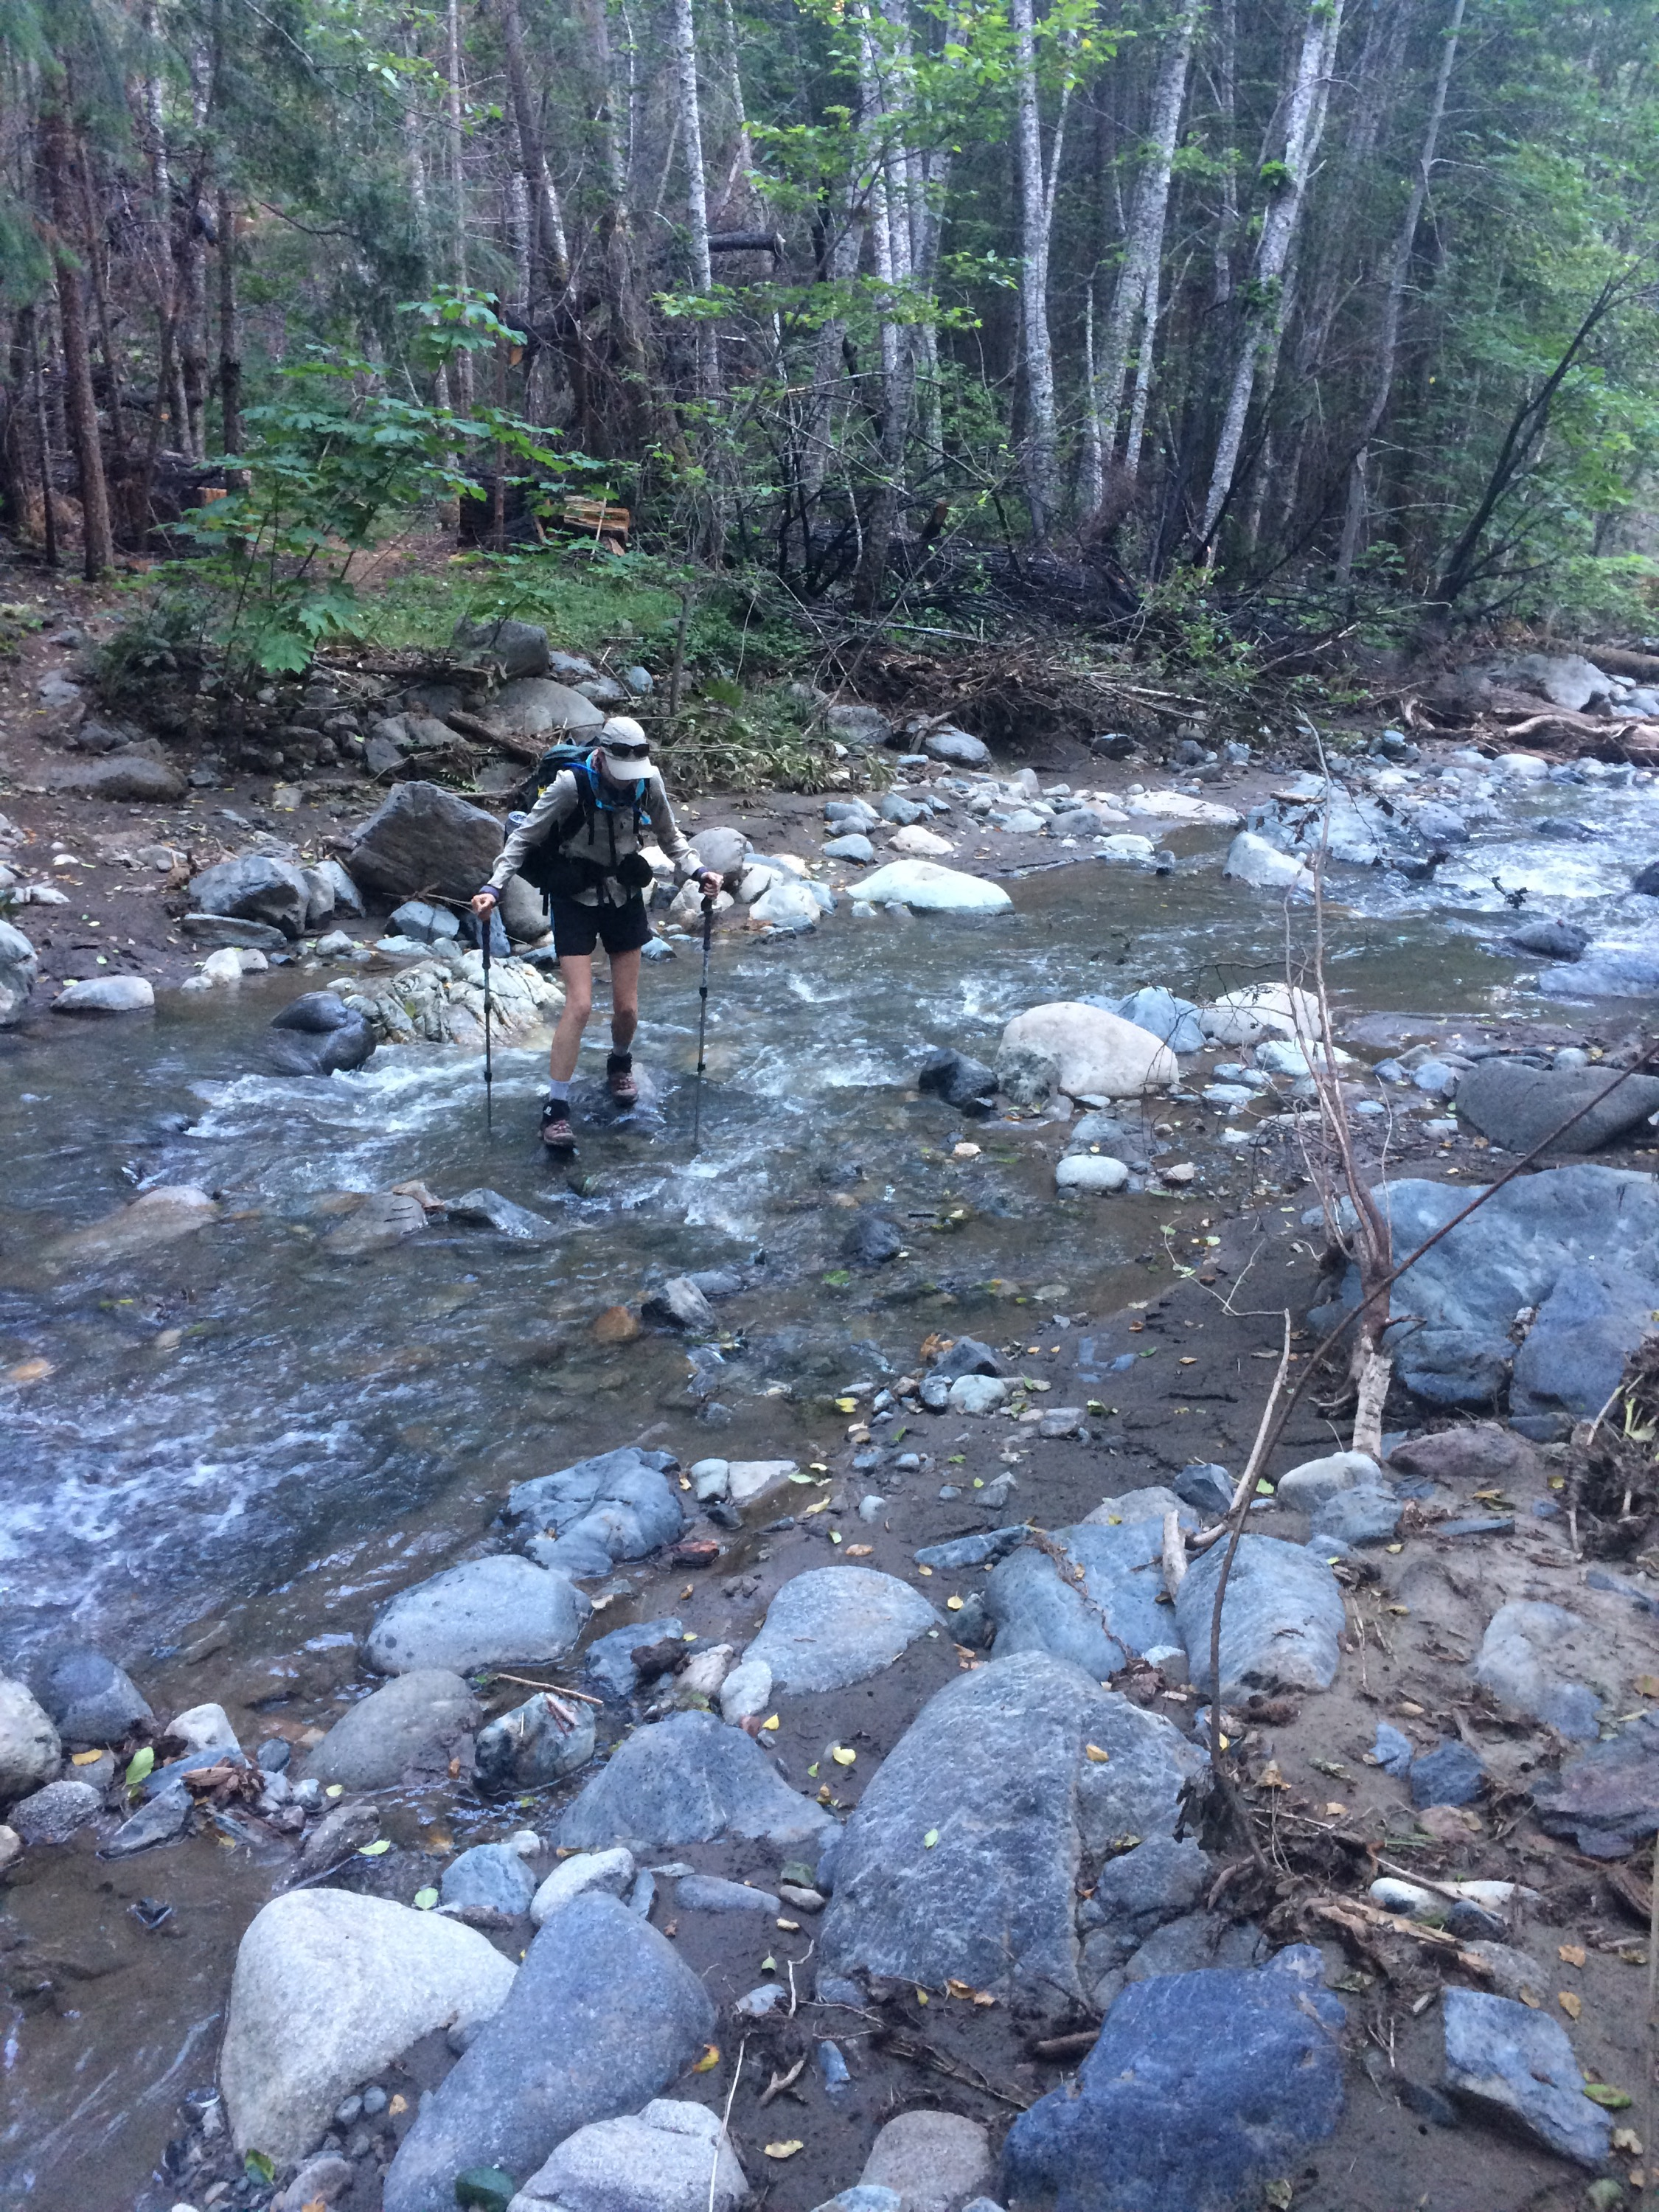 Rock hopping across the creek.